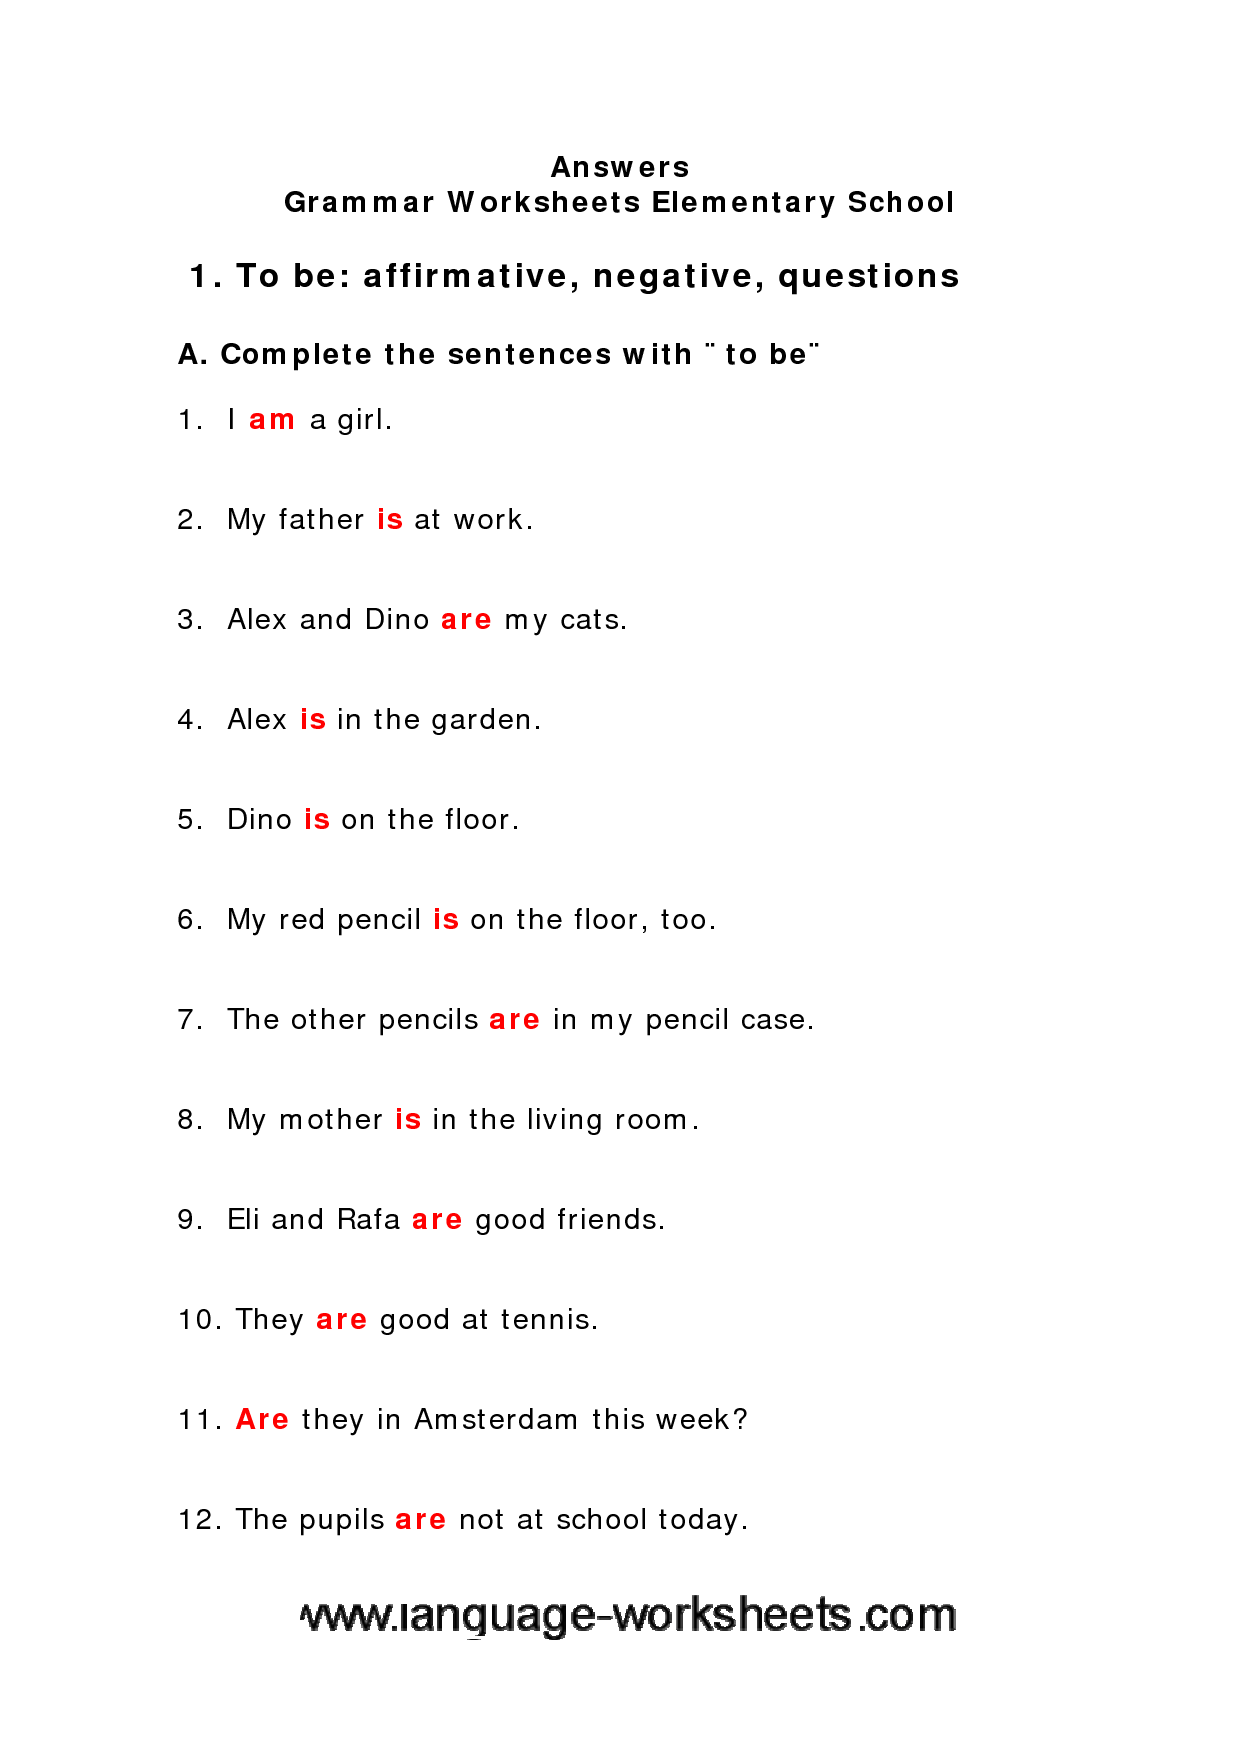 Grammar Worksheets For Middle School Free Worksheets Library – Grammar Worksheets Free